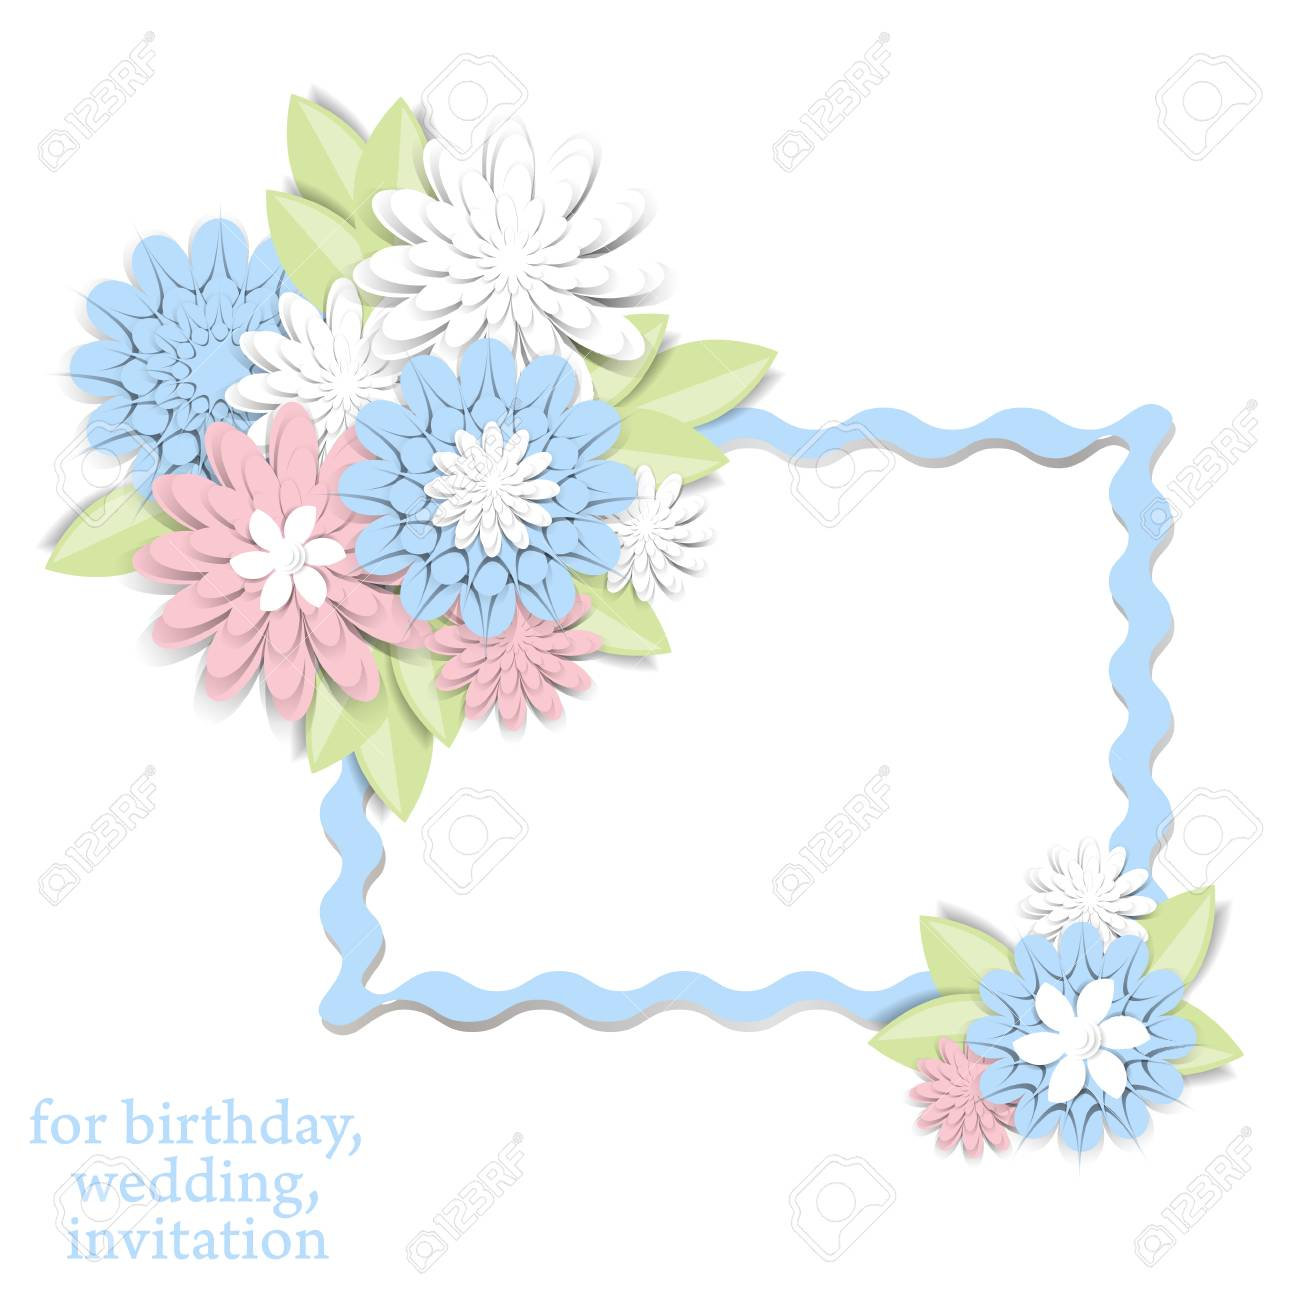 Greeting Card With 3d Paper Flowers And Frame For Text Romantic